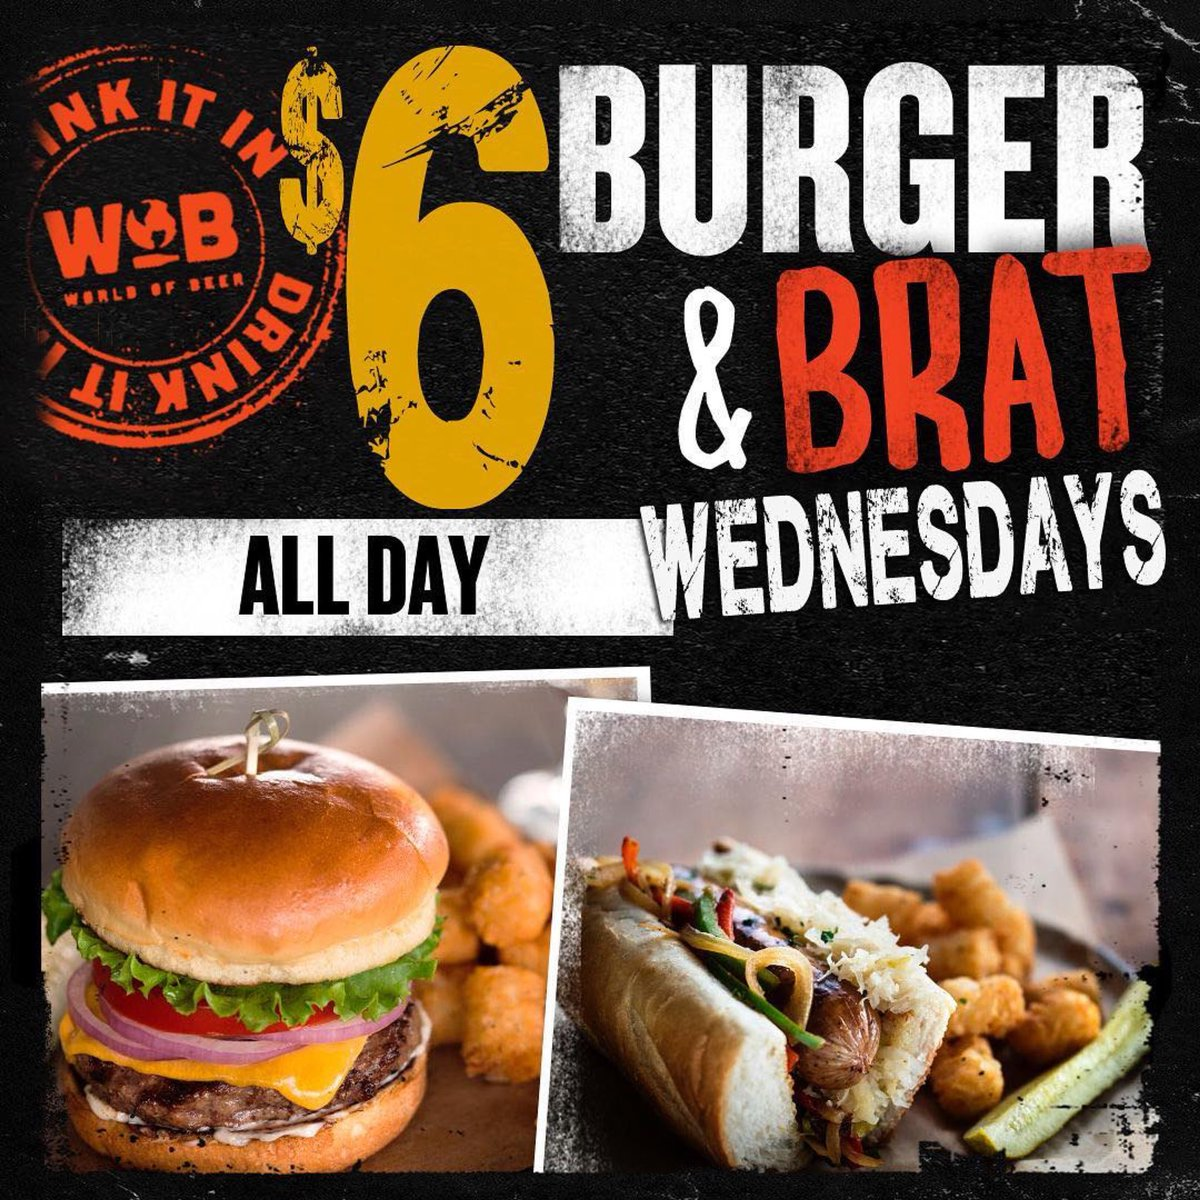 World Of Beer Syracuse On Twitter Get Over The Hump This Week With 6 Burgers Brats All Day Every Wednesday Burgers Brats Food Foodie Cuse Forkyeah Syracuse Ny Humpday Https T Co Lus77eu8ac